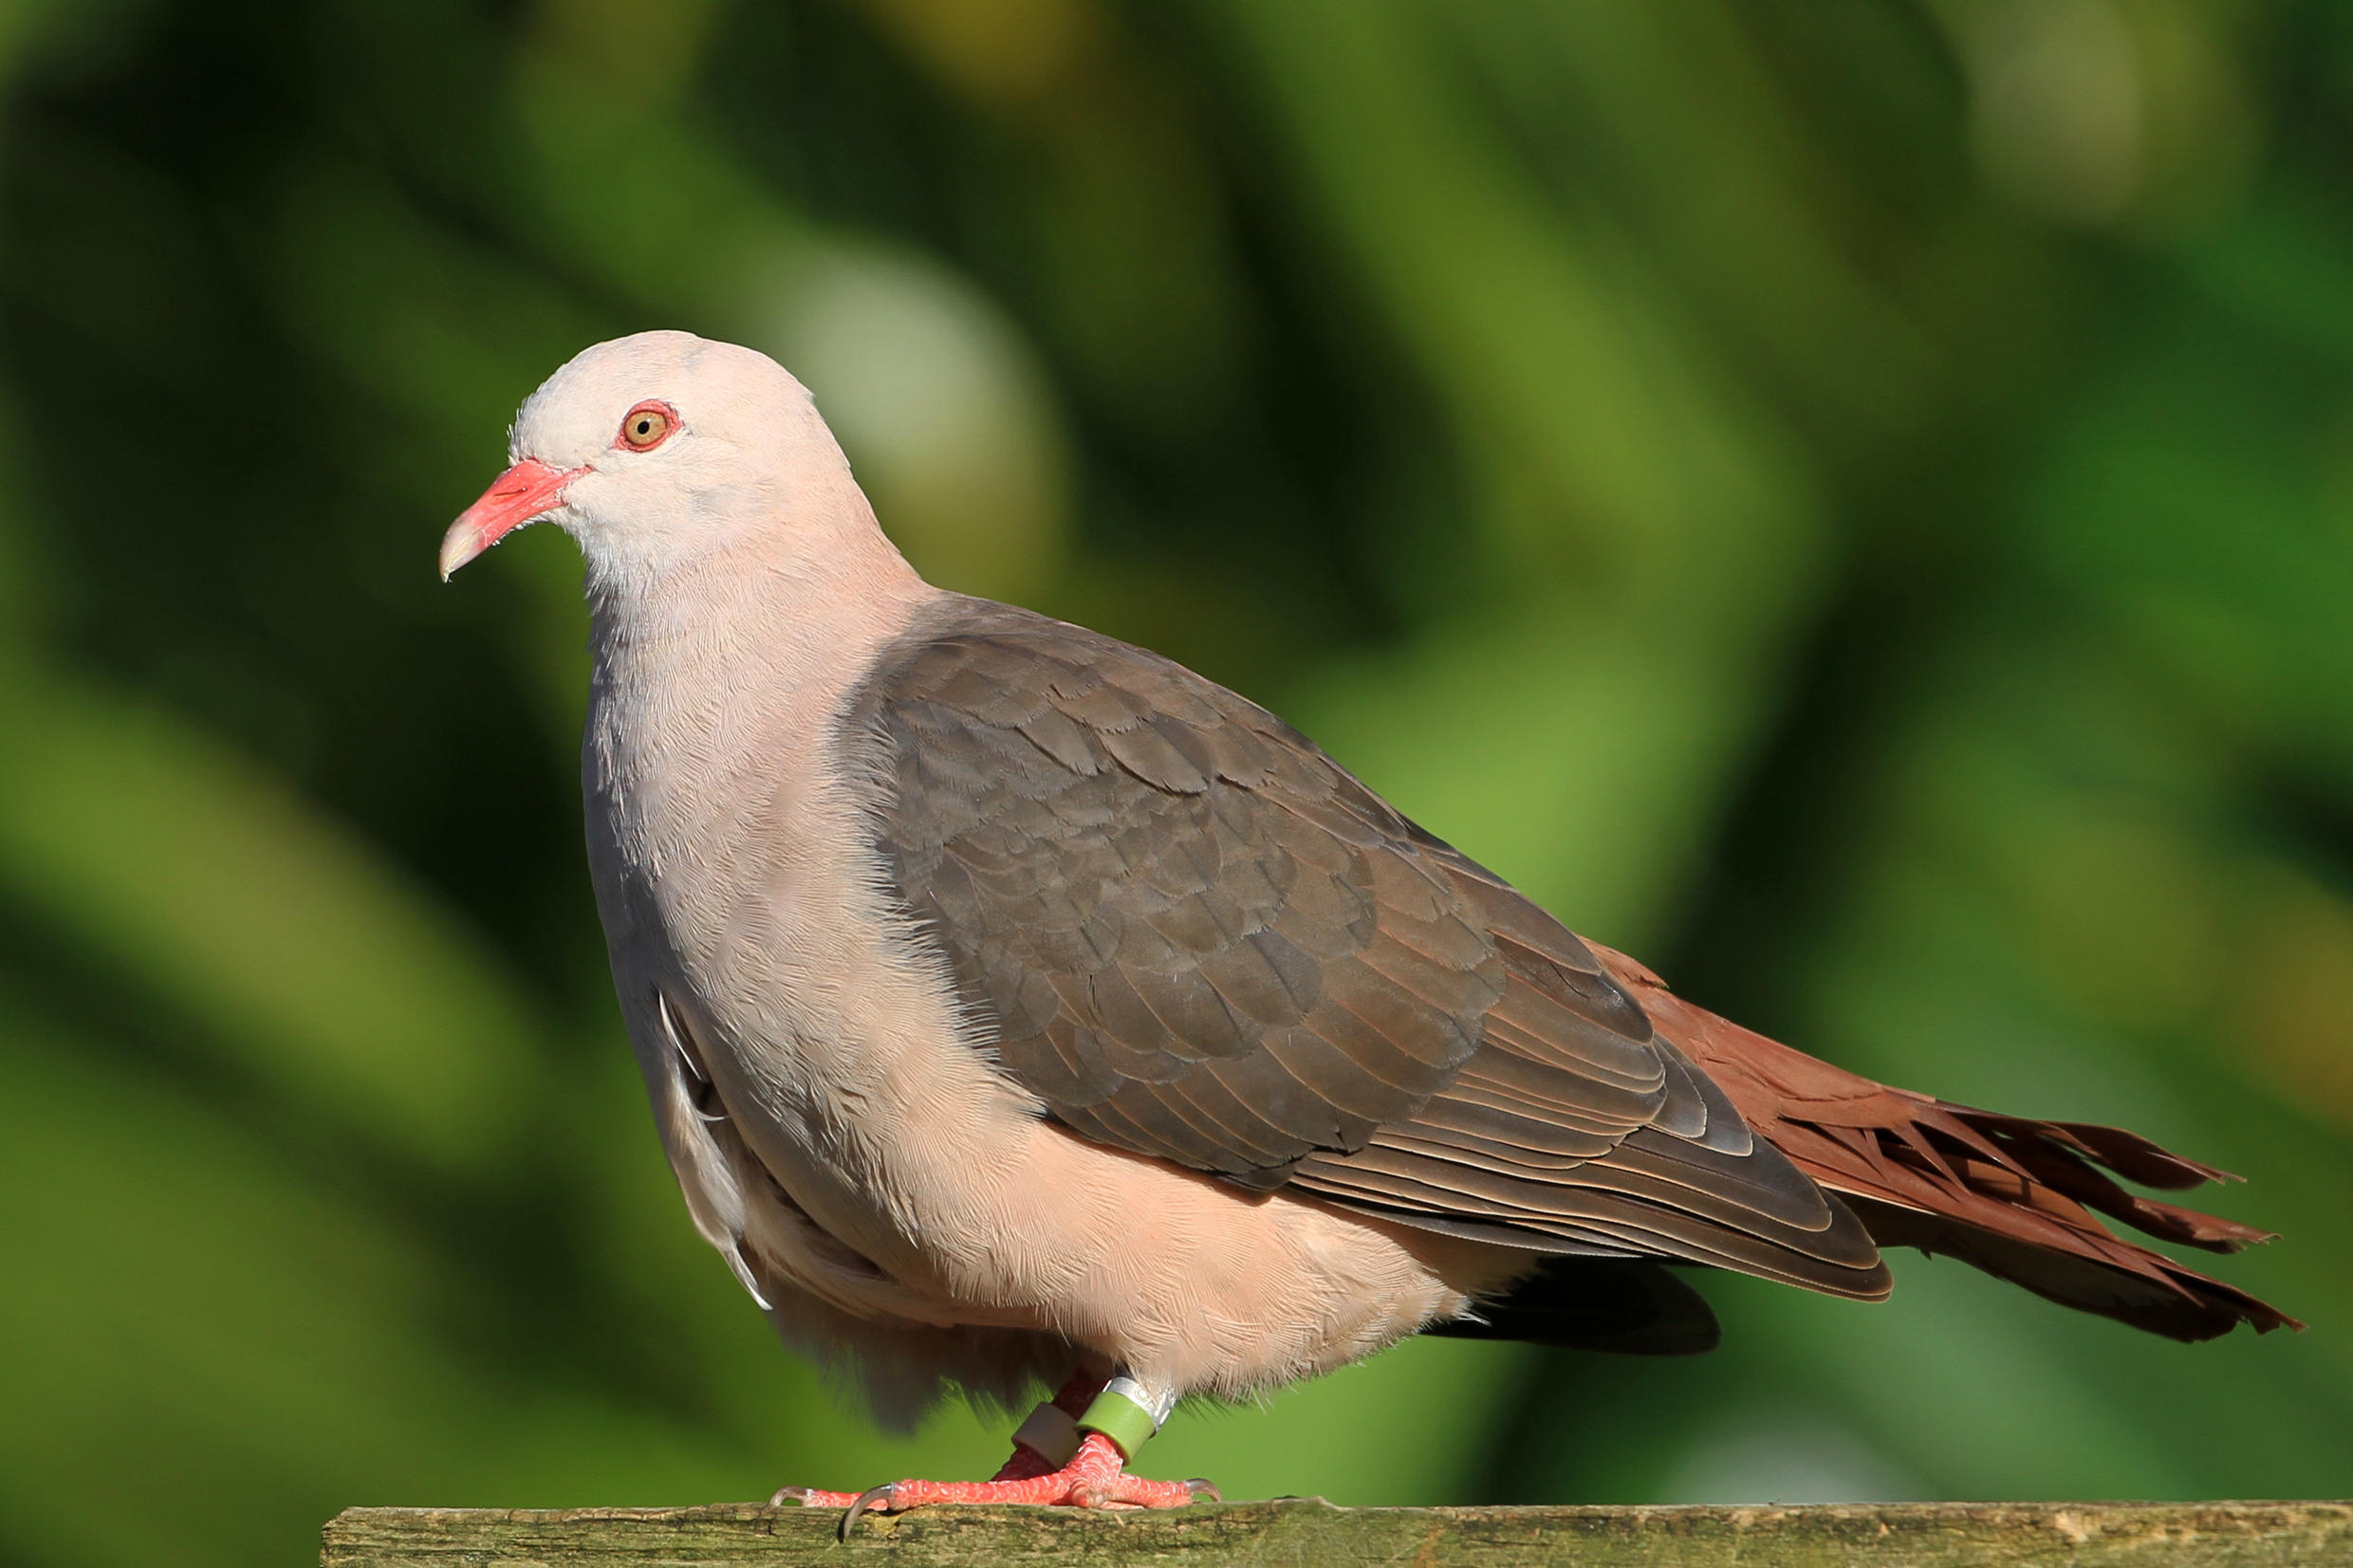 The vulnerable Pink Pigeon The Pink Pigeon, unique to Mauritius, has been restored from near extinction in 1990 to now reach a population of over 400.